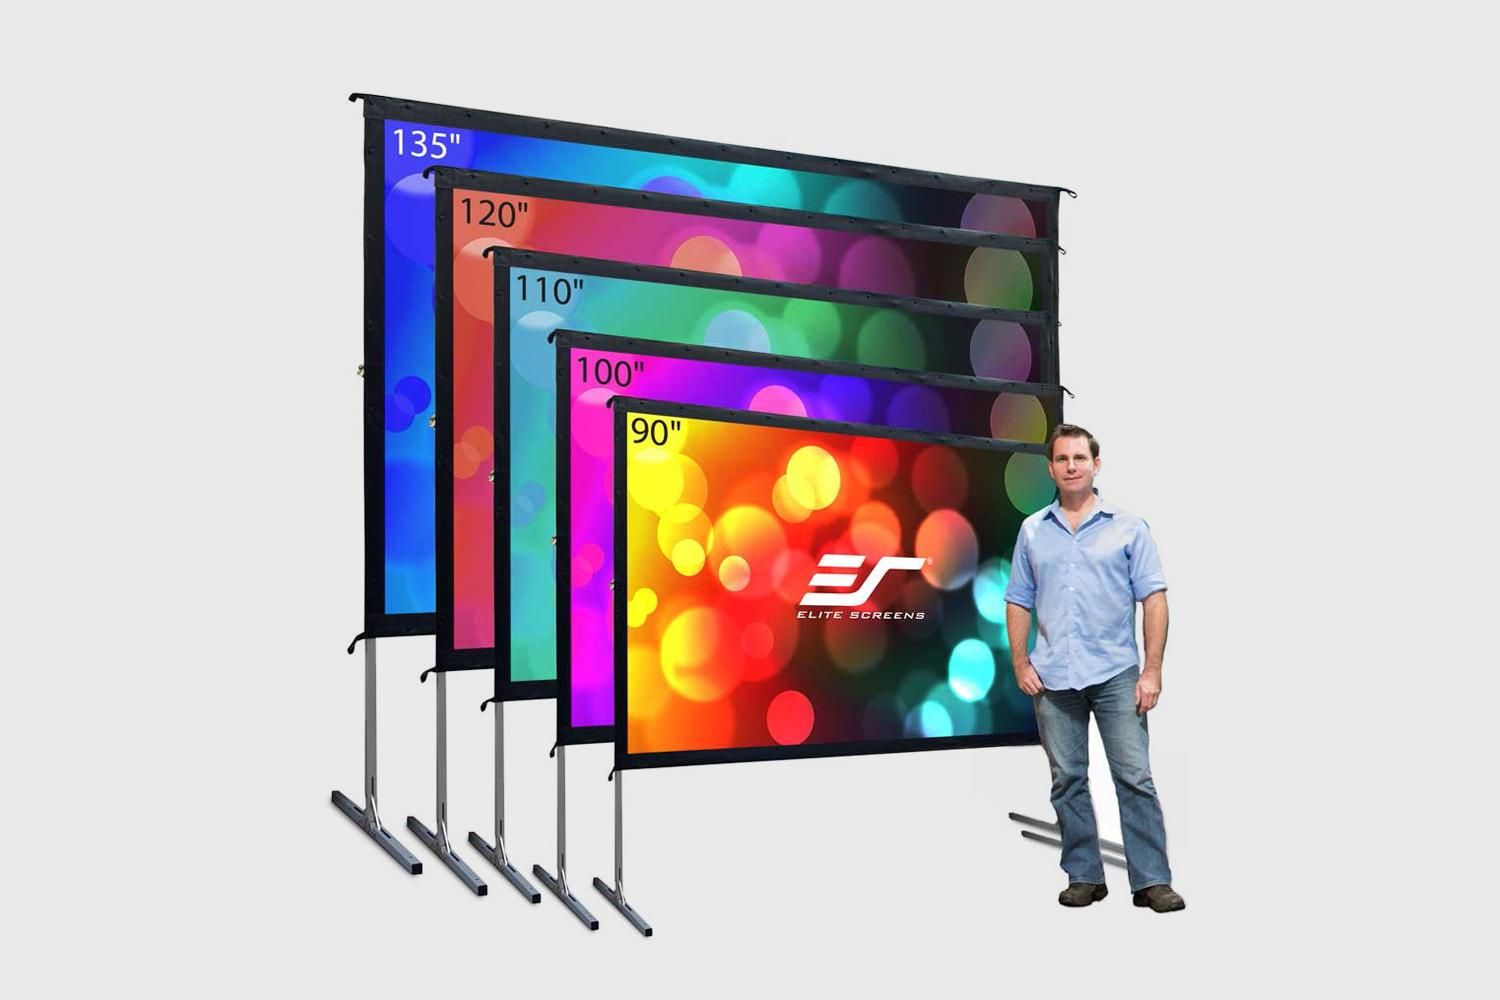 Amazon Com Elite Screens Yard Master 2 Series Foldable Frame Outdoor Front Projec Outdoor Projector Screen Diy Projector Screen Diy Outdoor Projector Screens